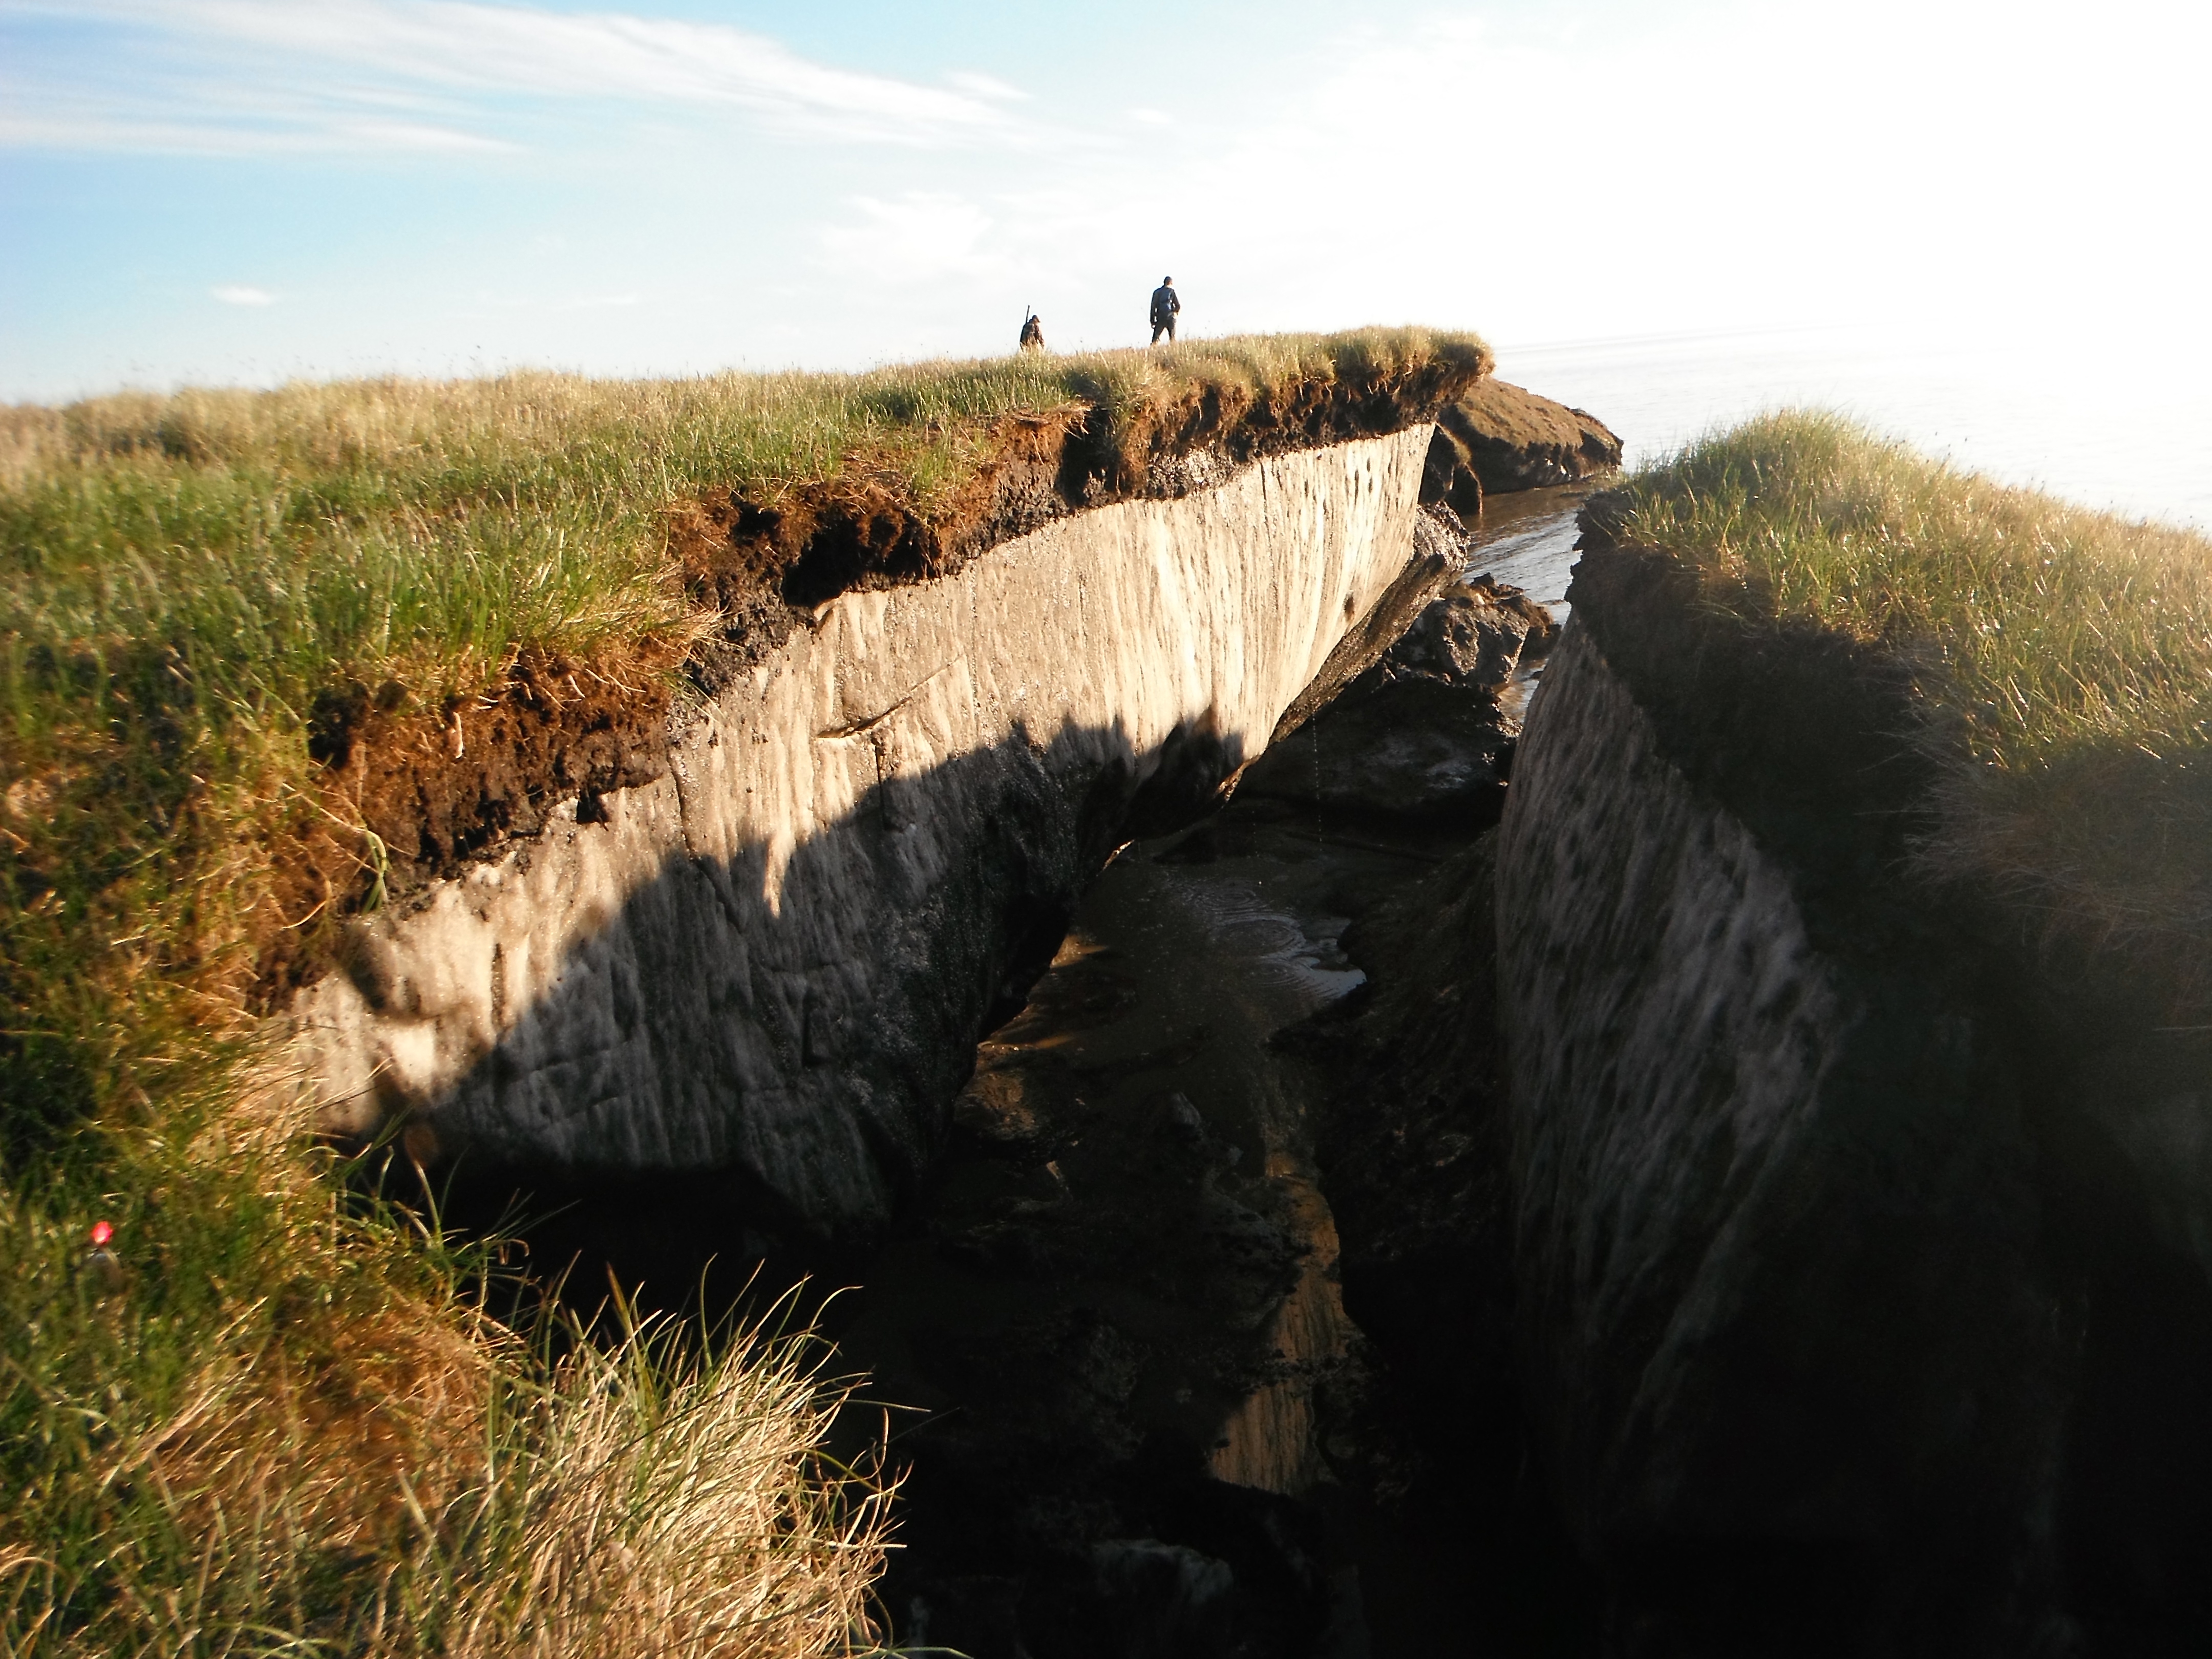 Coastal erosion reveals the extent of ice-rich permafrost underlying active layer on the Arctic Coastal Plain in the Teshekpuk Lake Special Area of the National Petroleum Reserve - Alaska, in this July 2011 photo. (Brandt Meixell / USGS)